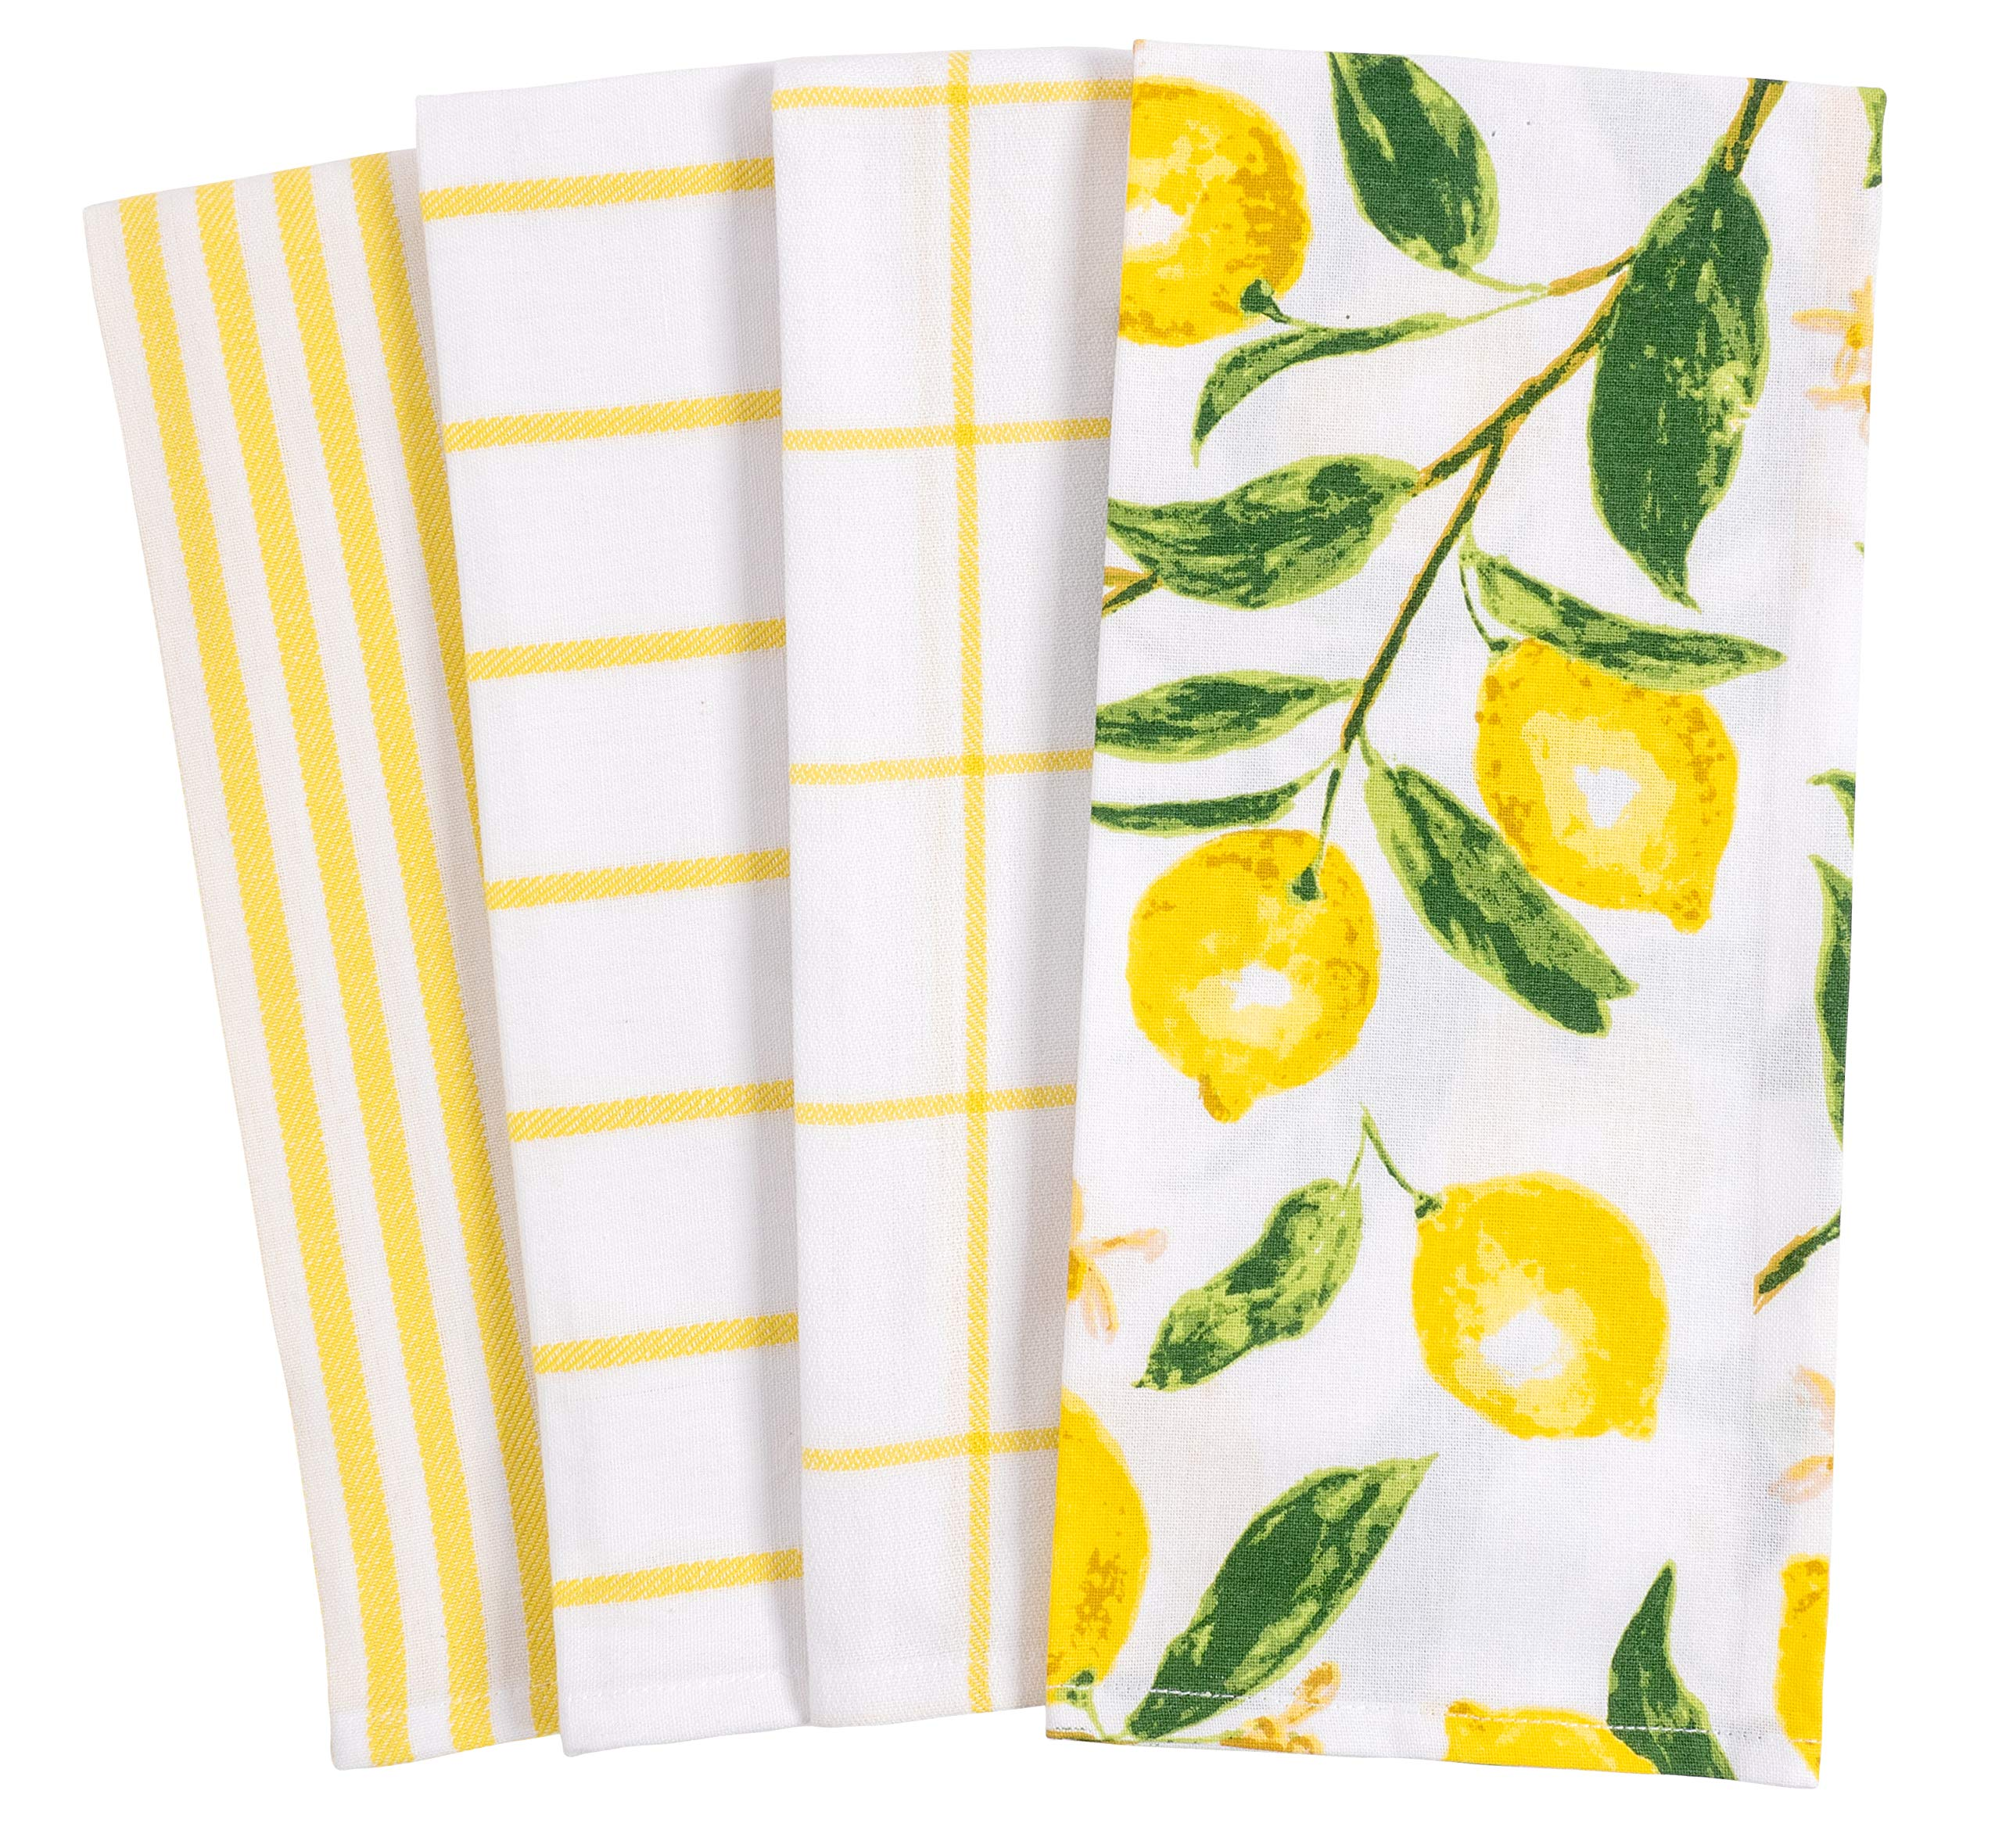 KAF Home Pantry Lemons All Over Kitchen Dish Towel Set of 4, 100-Percent Cotton, 18 x 28-inch by KAF Home